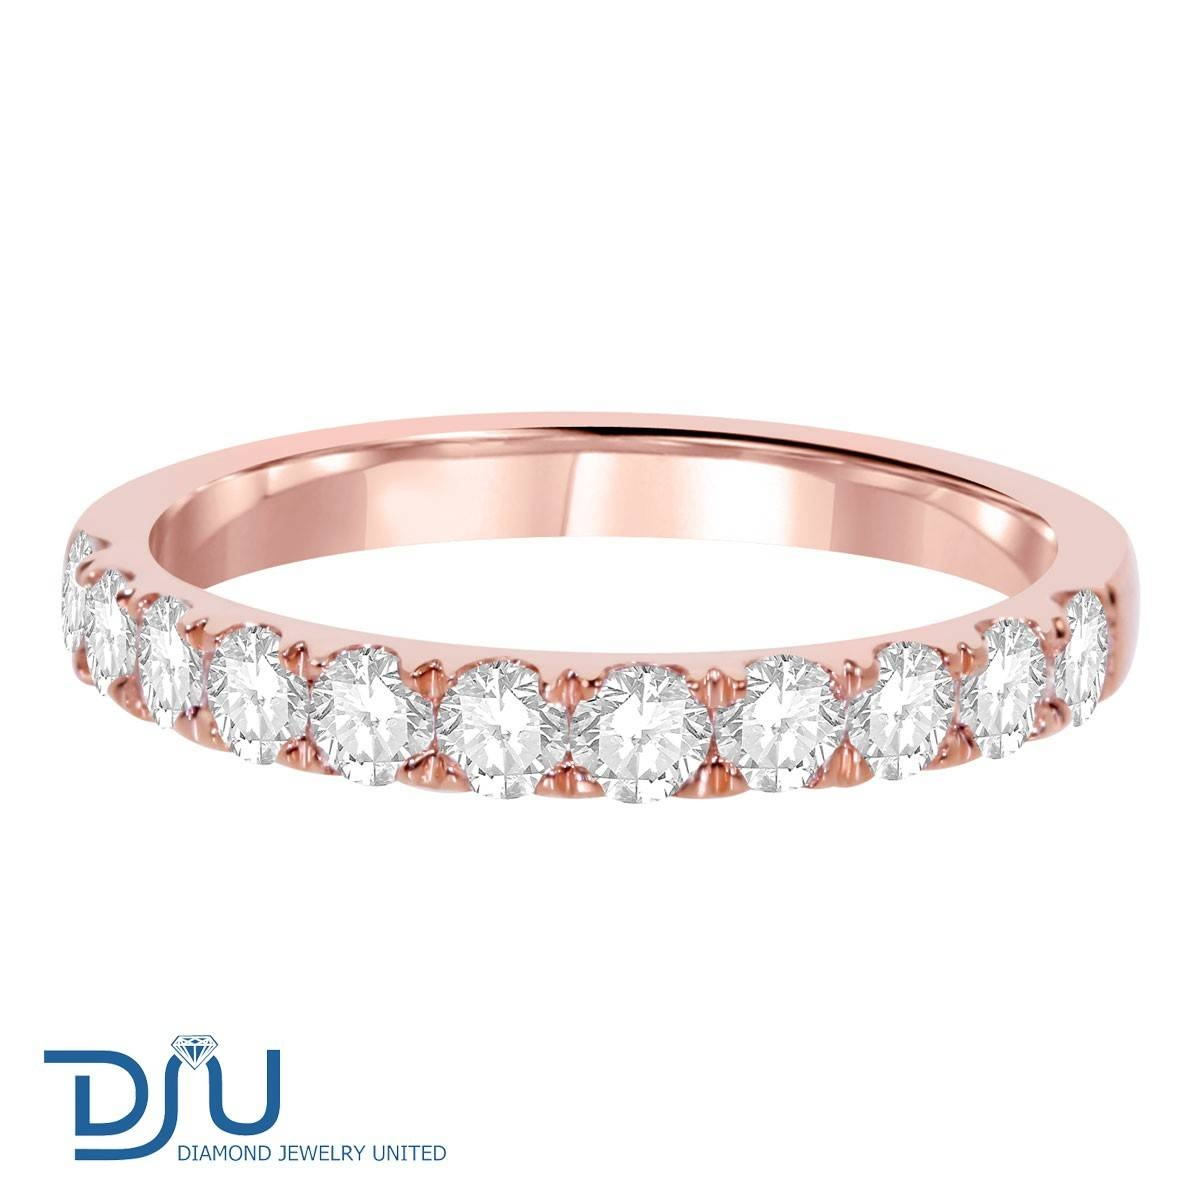 0.8 Carat Diamond Half Eternity Ring In 14K Solid Rose Gold Intended For Flat Engagement Rings (Gallery 13 of 15)